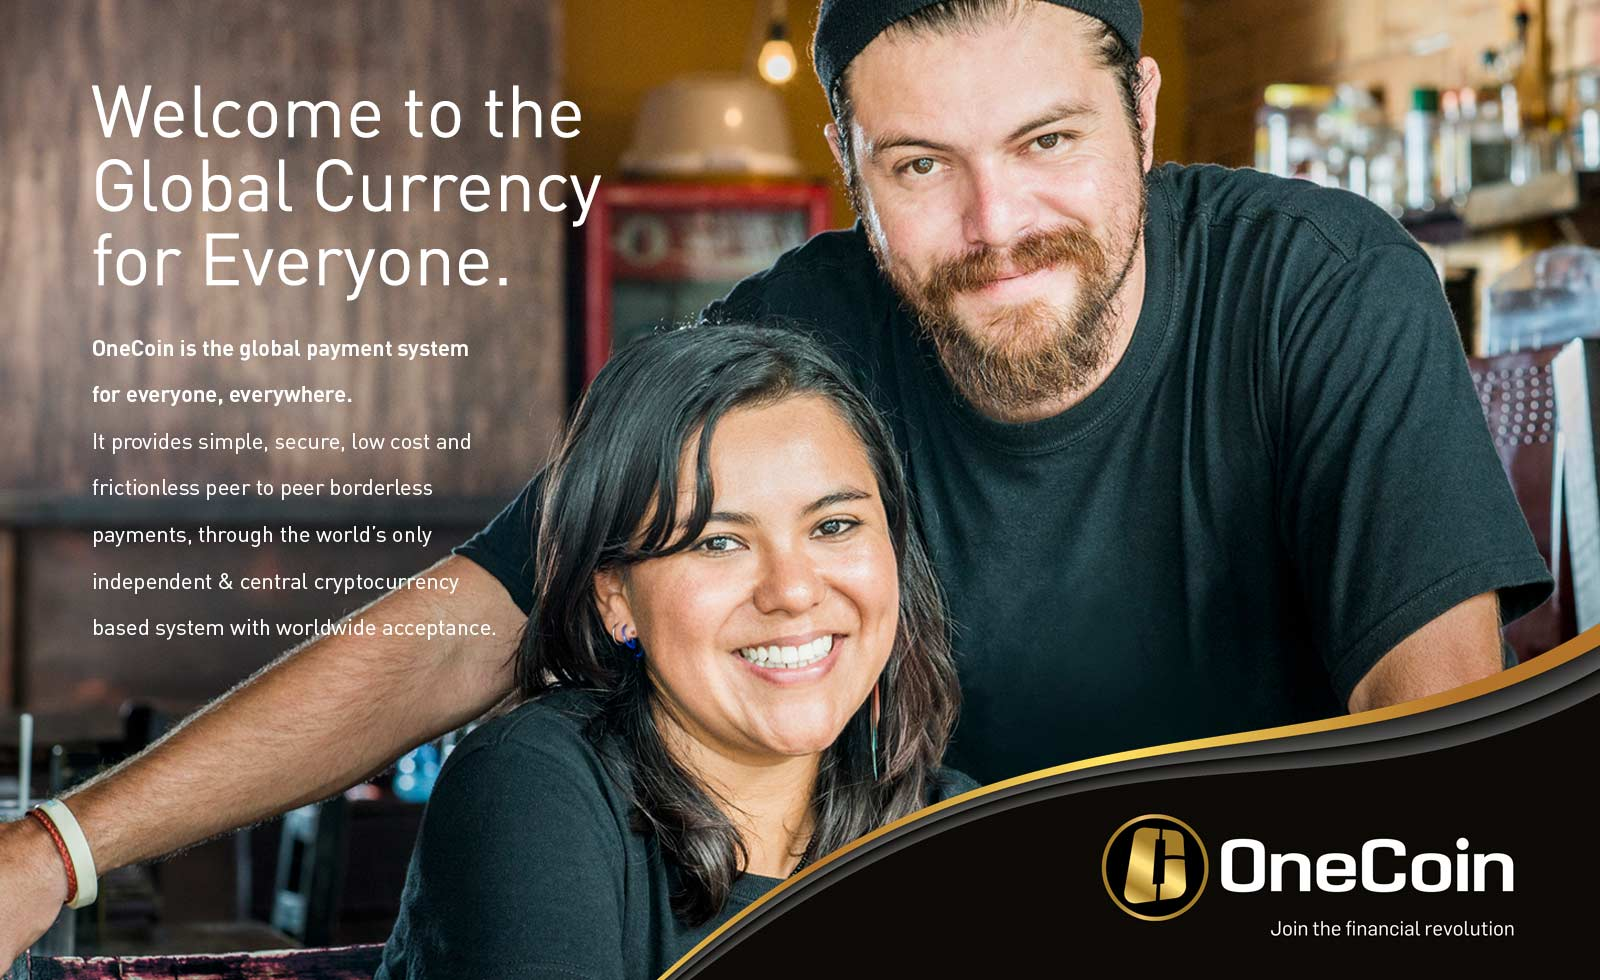 onecoin cryptocurrency adv advertising design